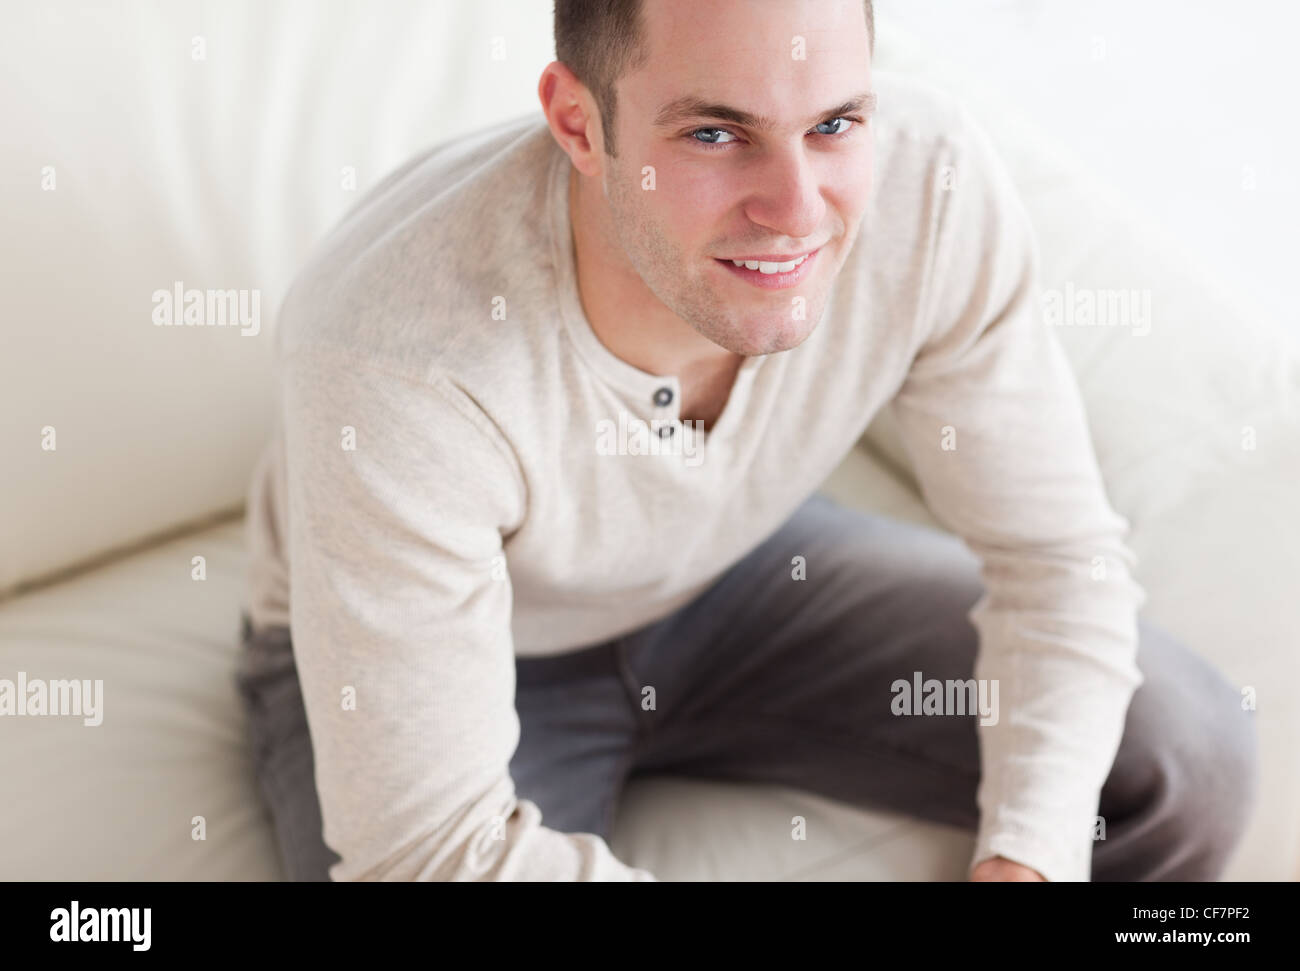 Handsome man sitting on a couch Banque D'Images